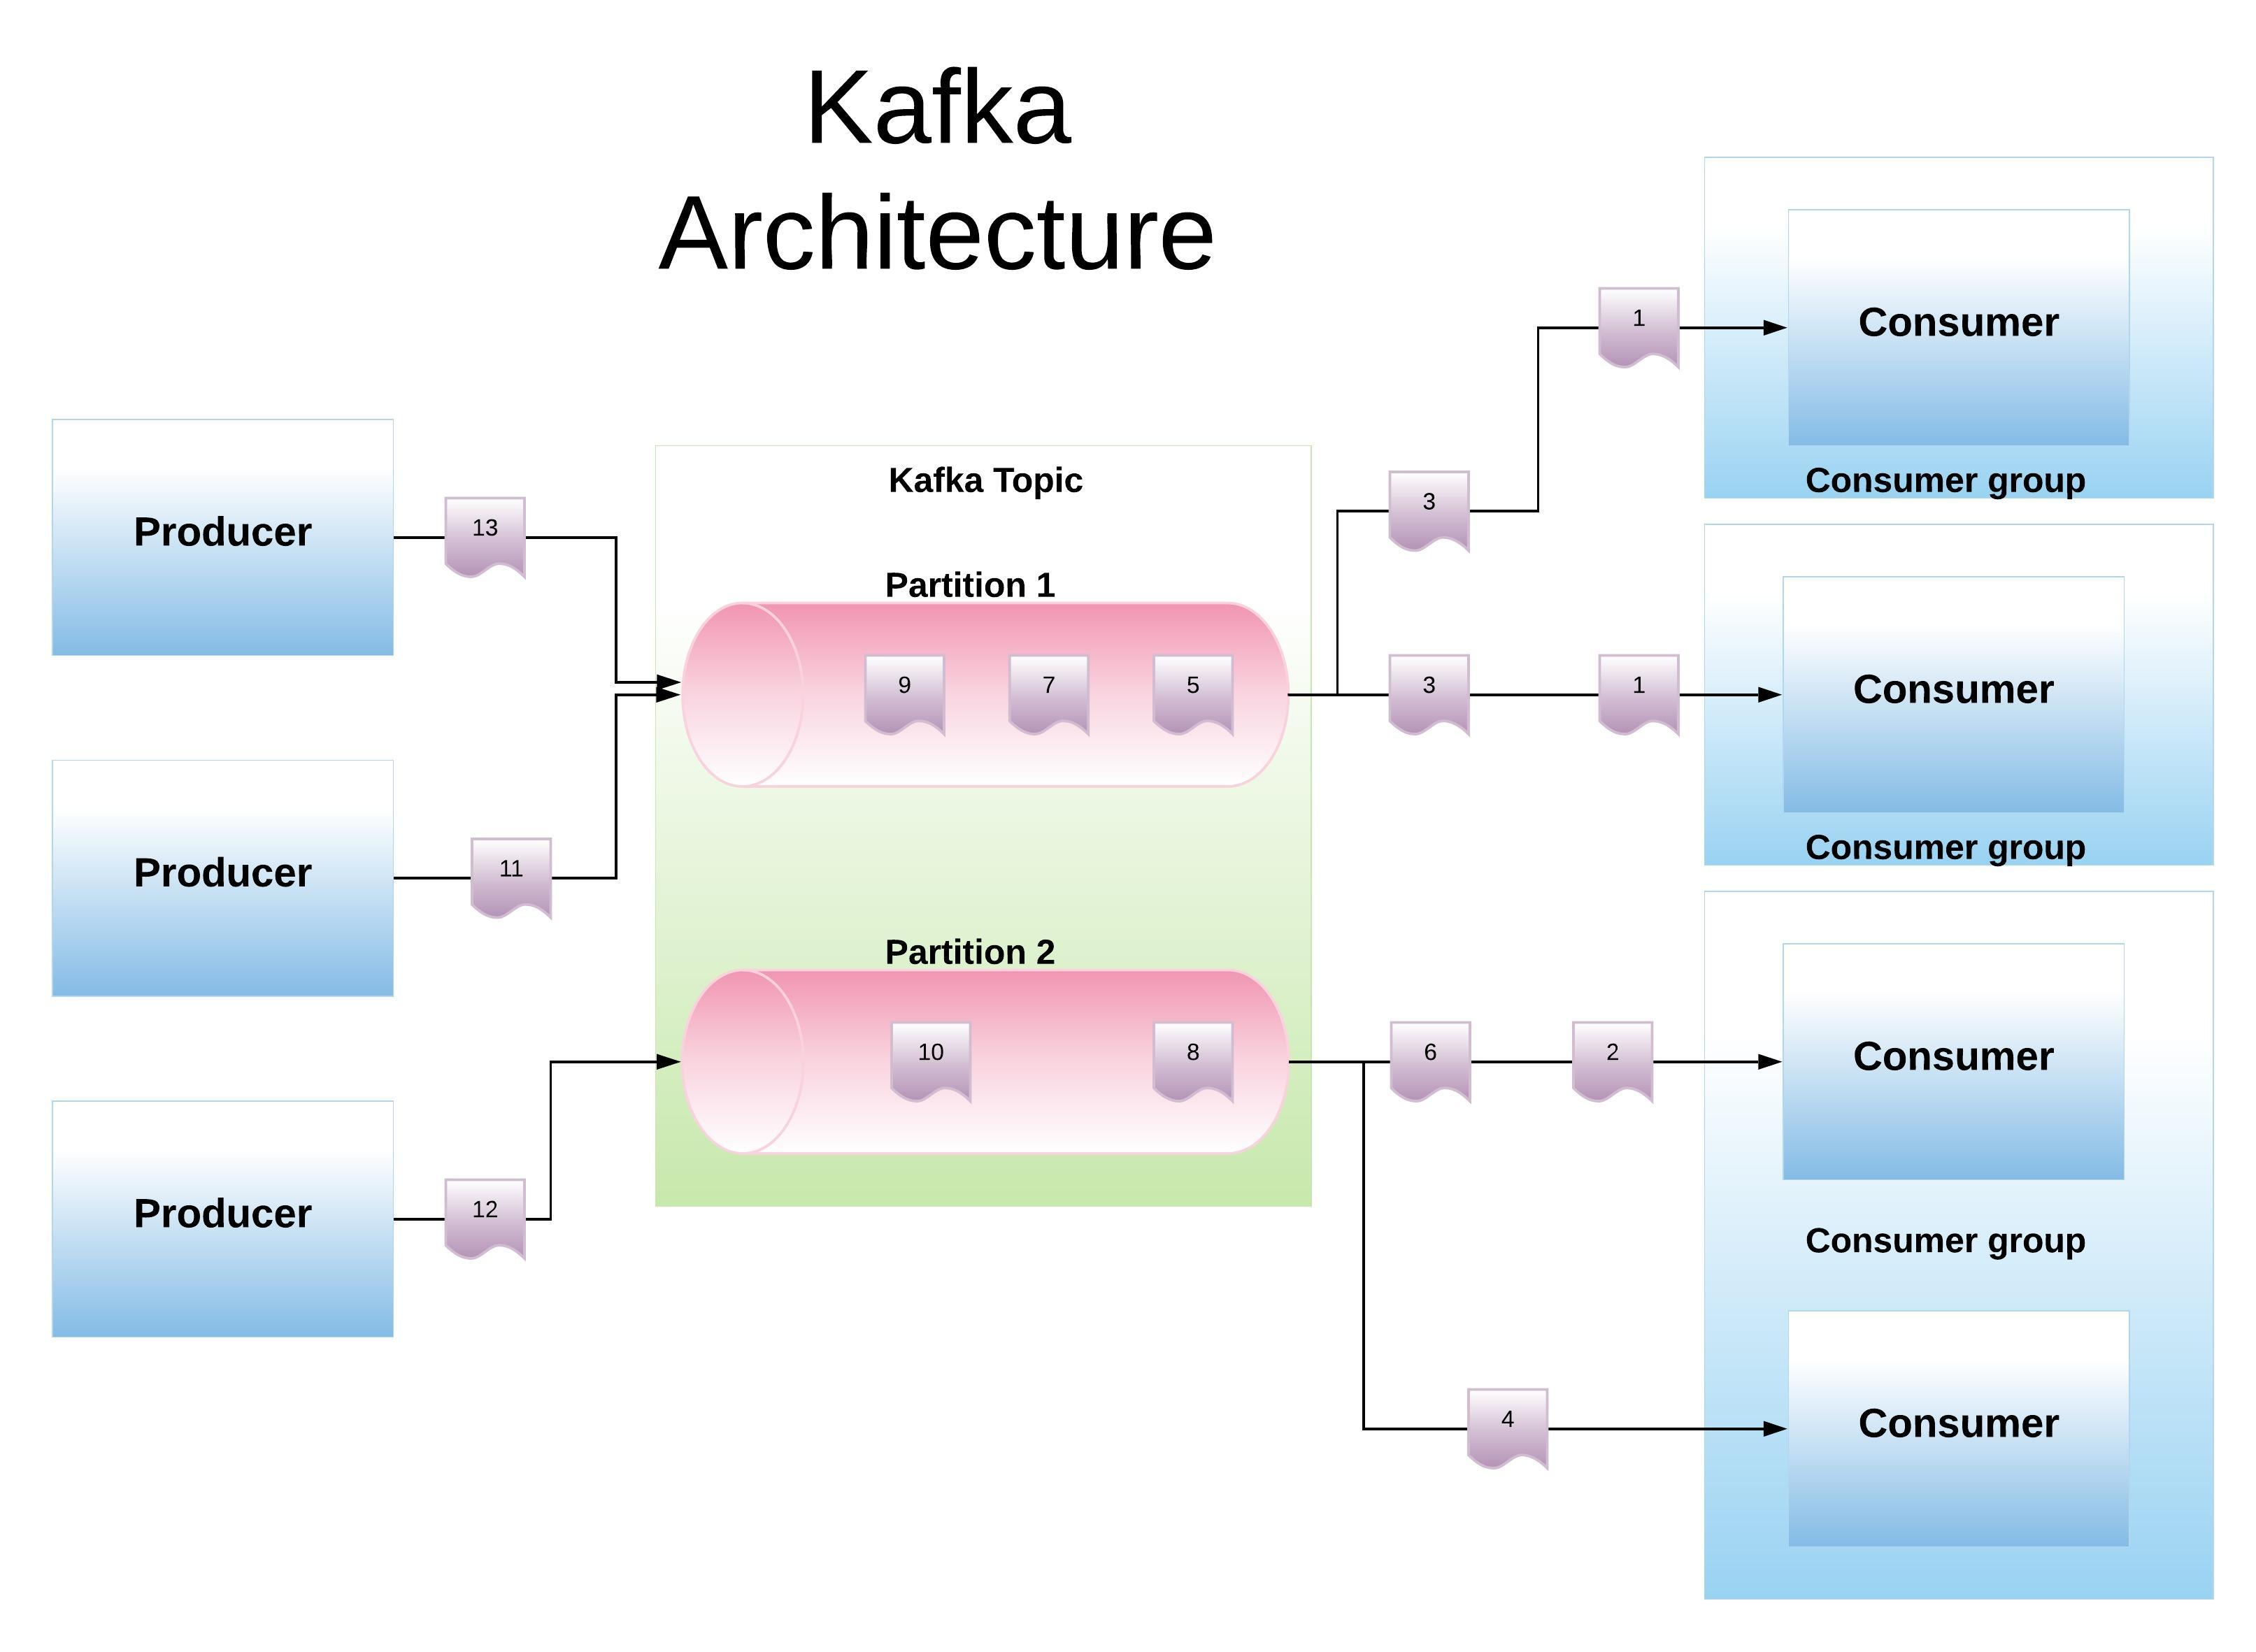 Comparing Apache Kafka, Amazon Kinesis, Microsoft Event Hubs and